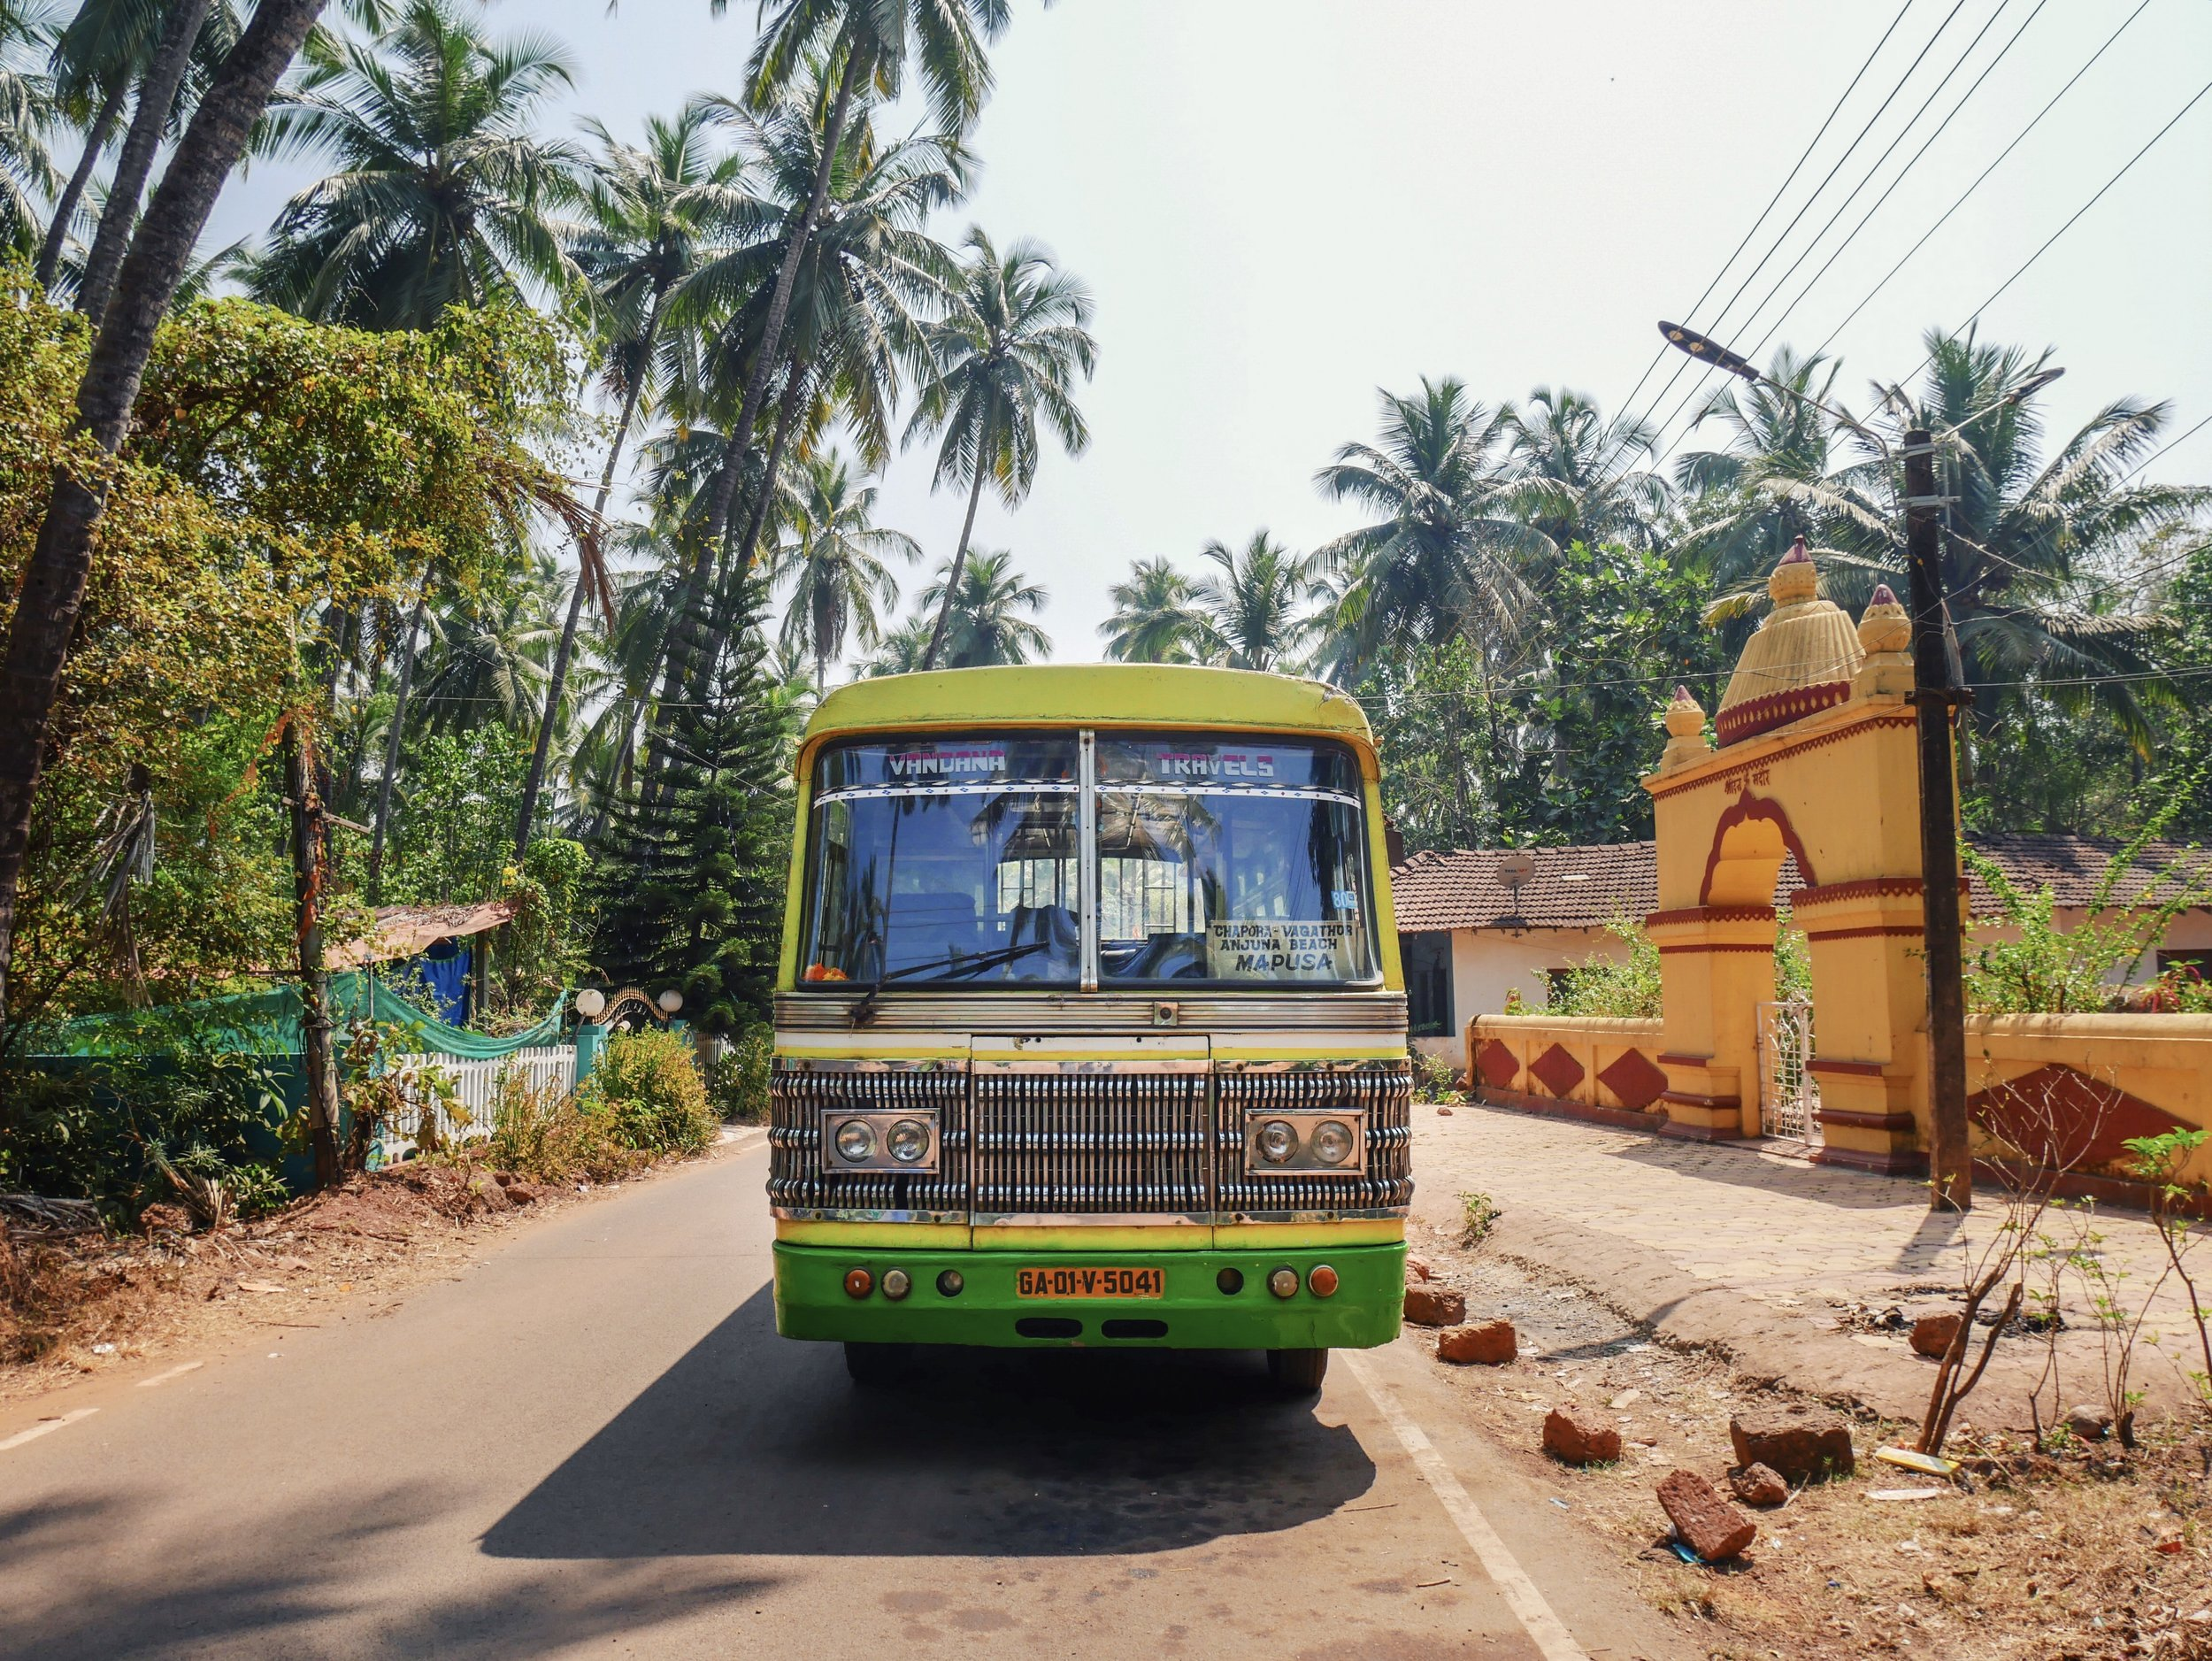 A bus spotted in Goa